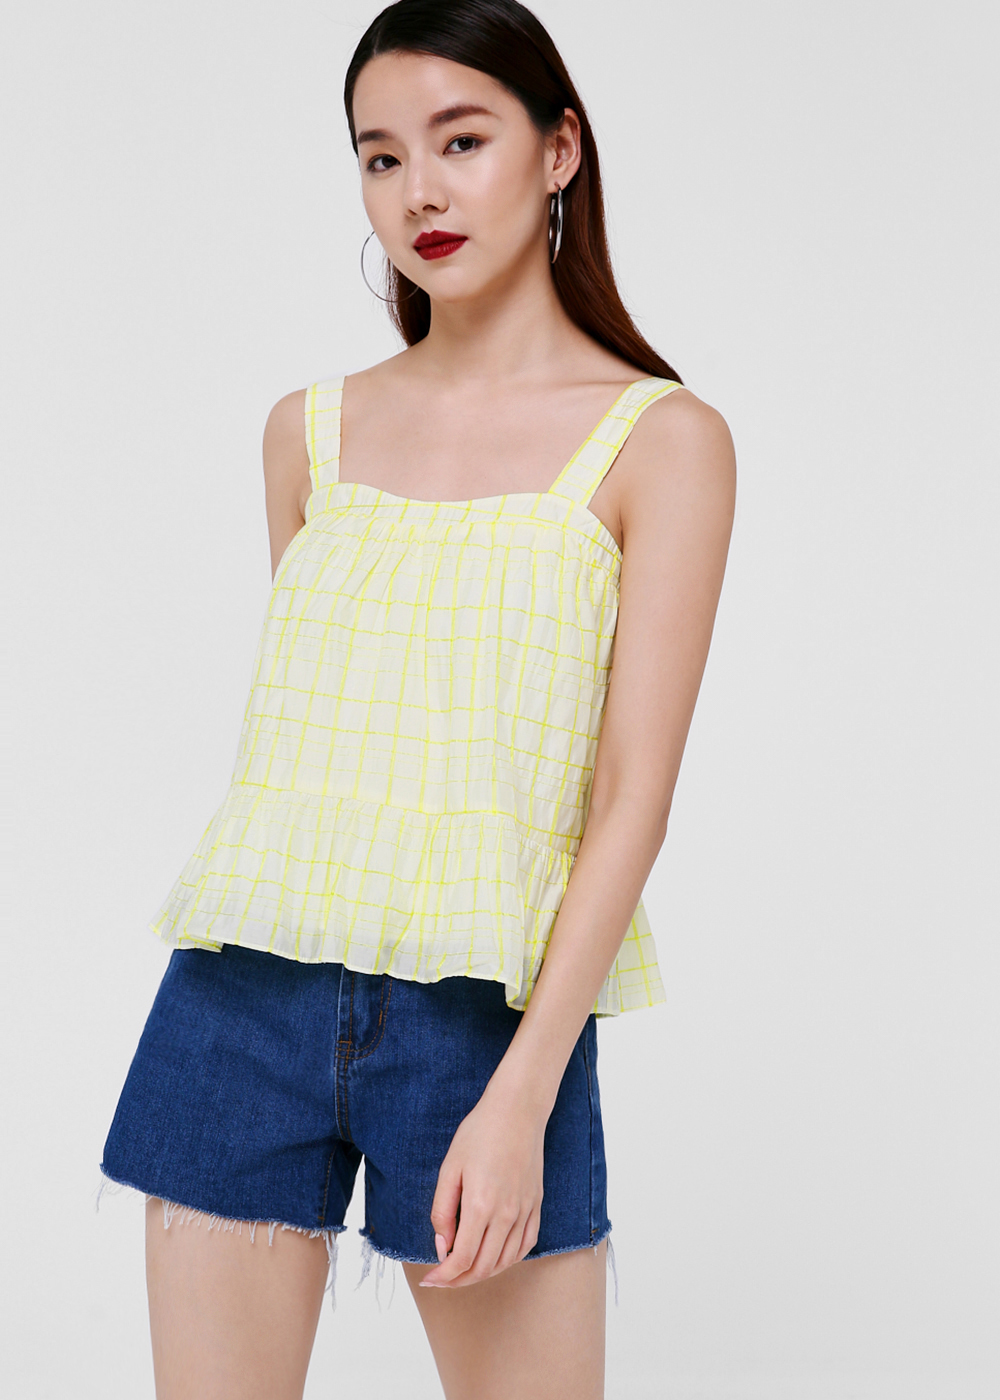 Sonia Textured Baby Doll Top